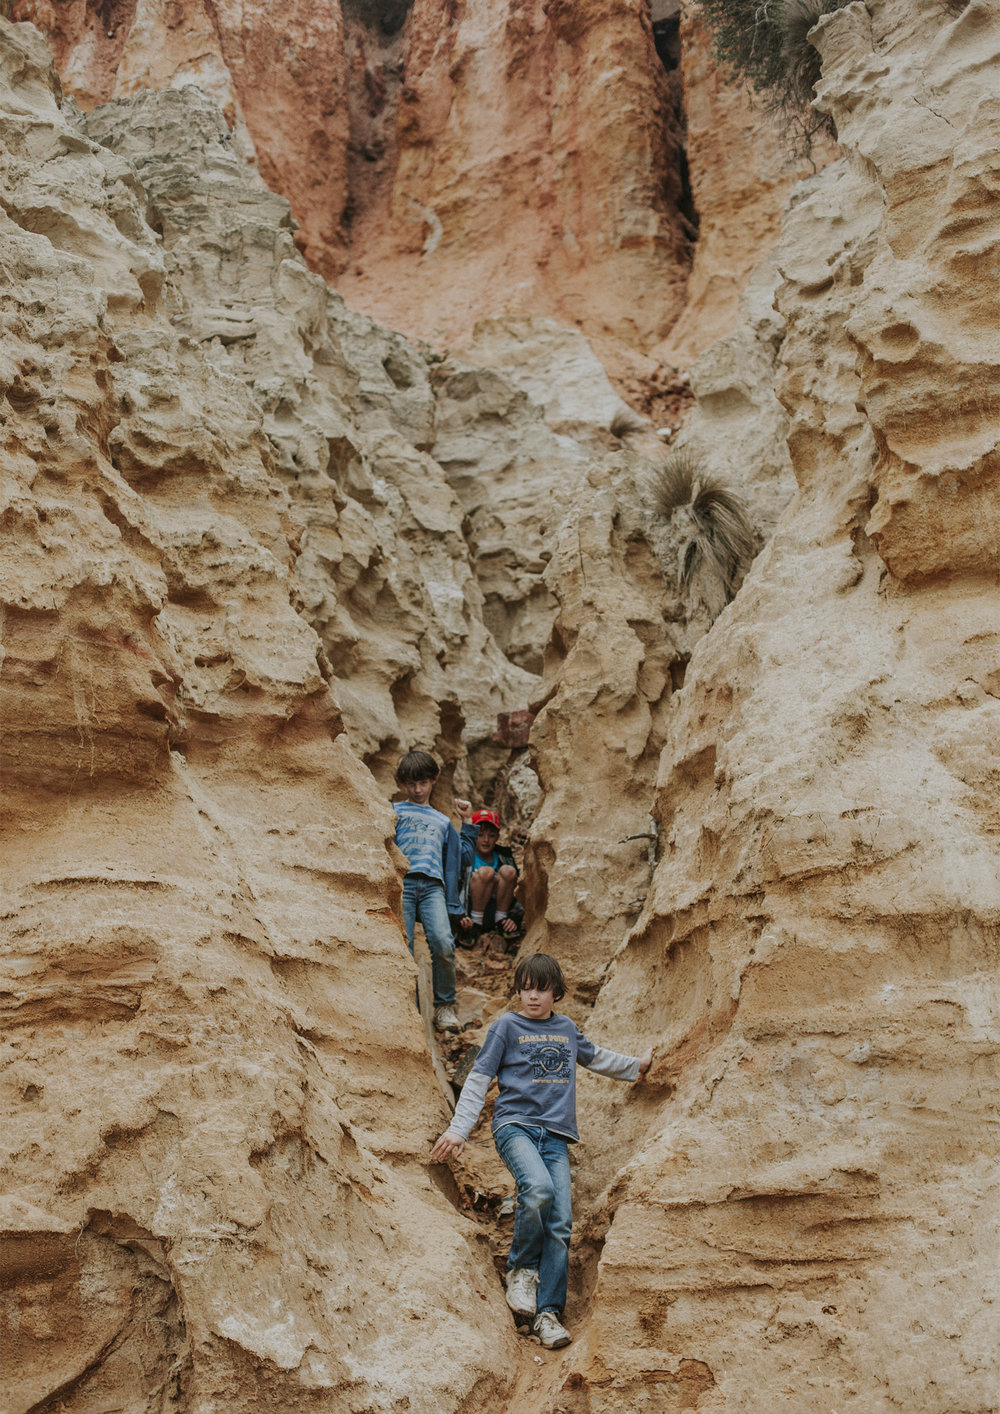 Boys playing in the cliffs at Sandringham beach